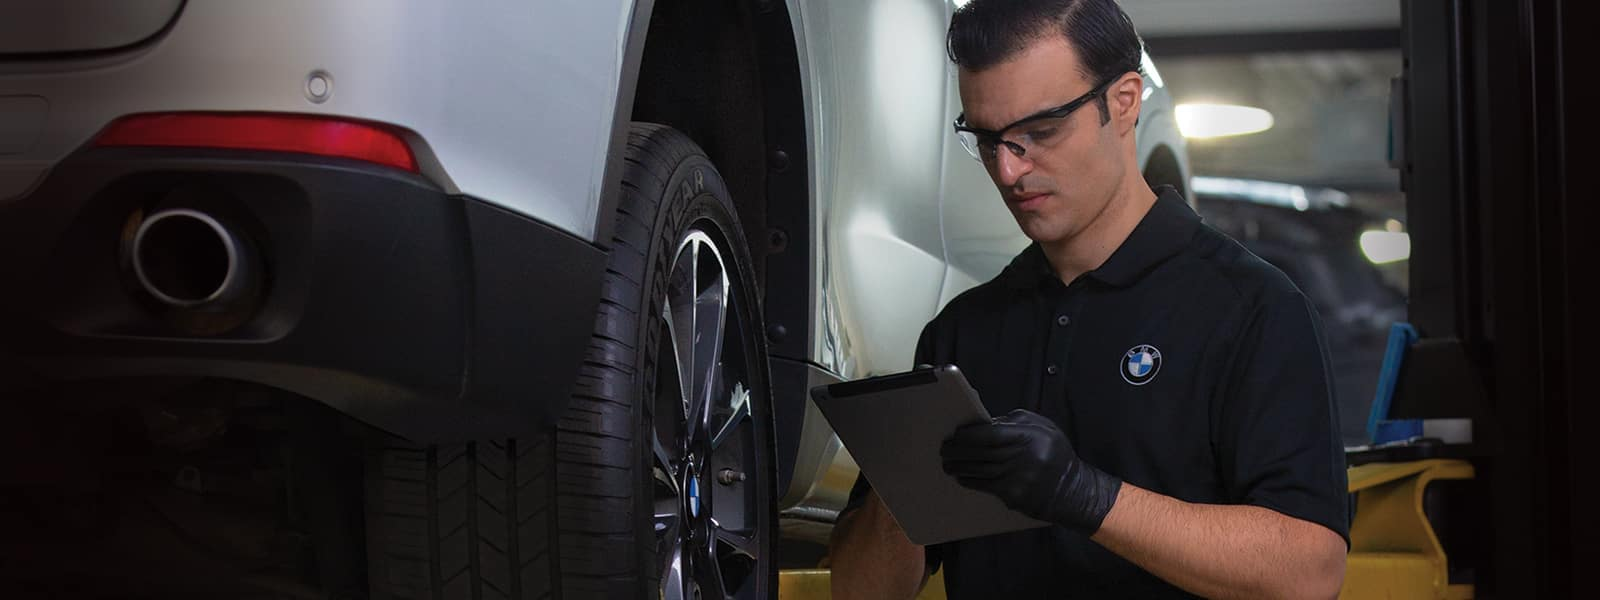 bmw certified technician reviewing file